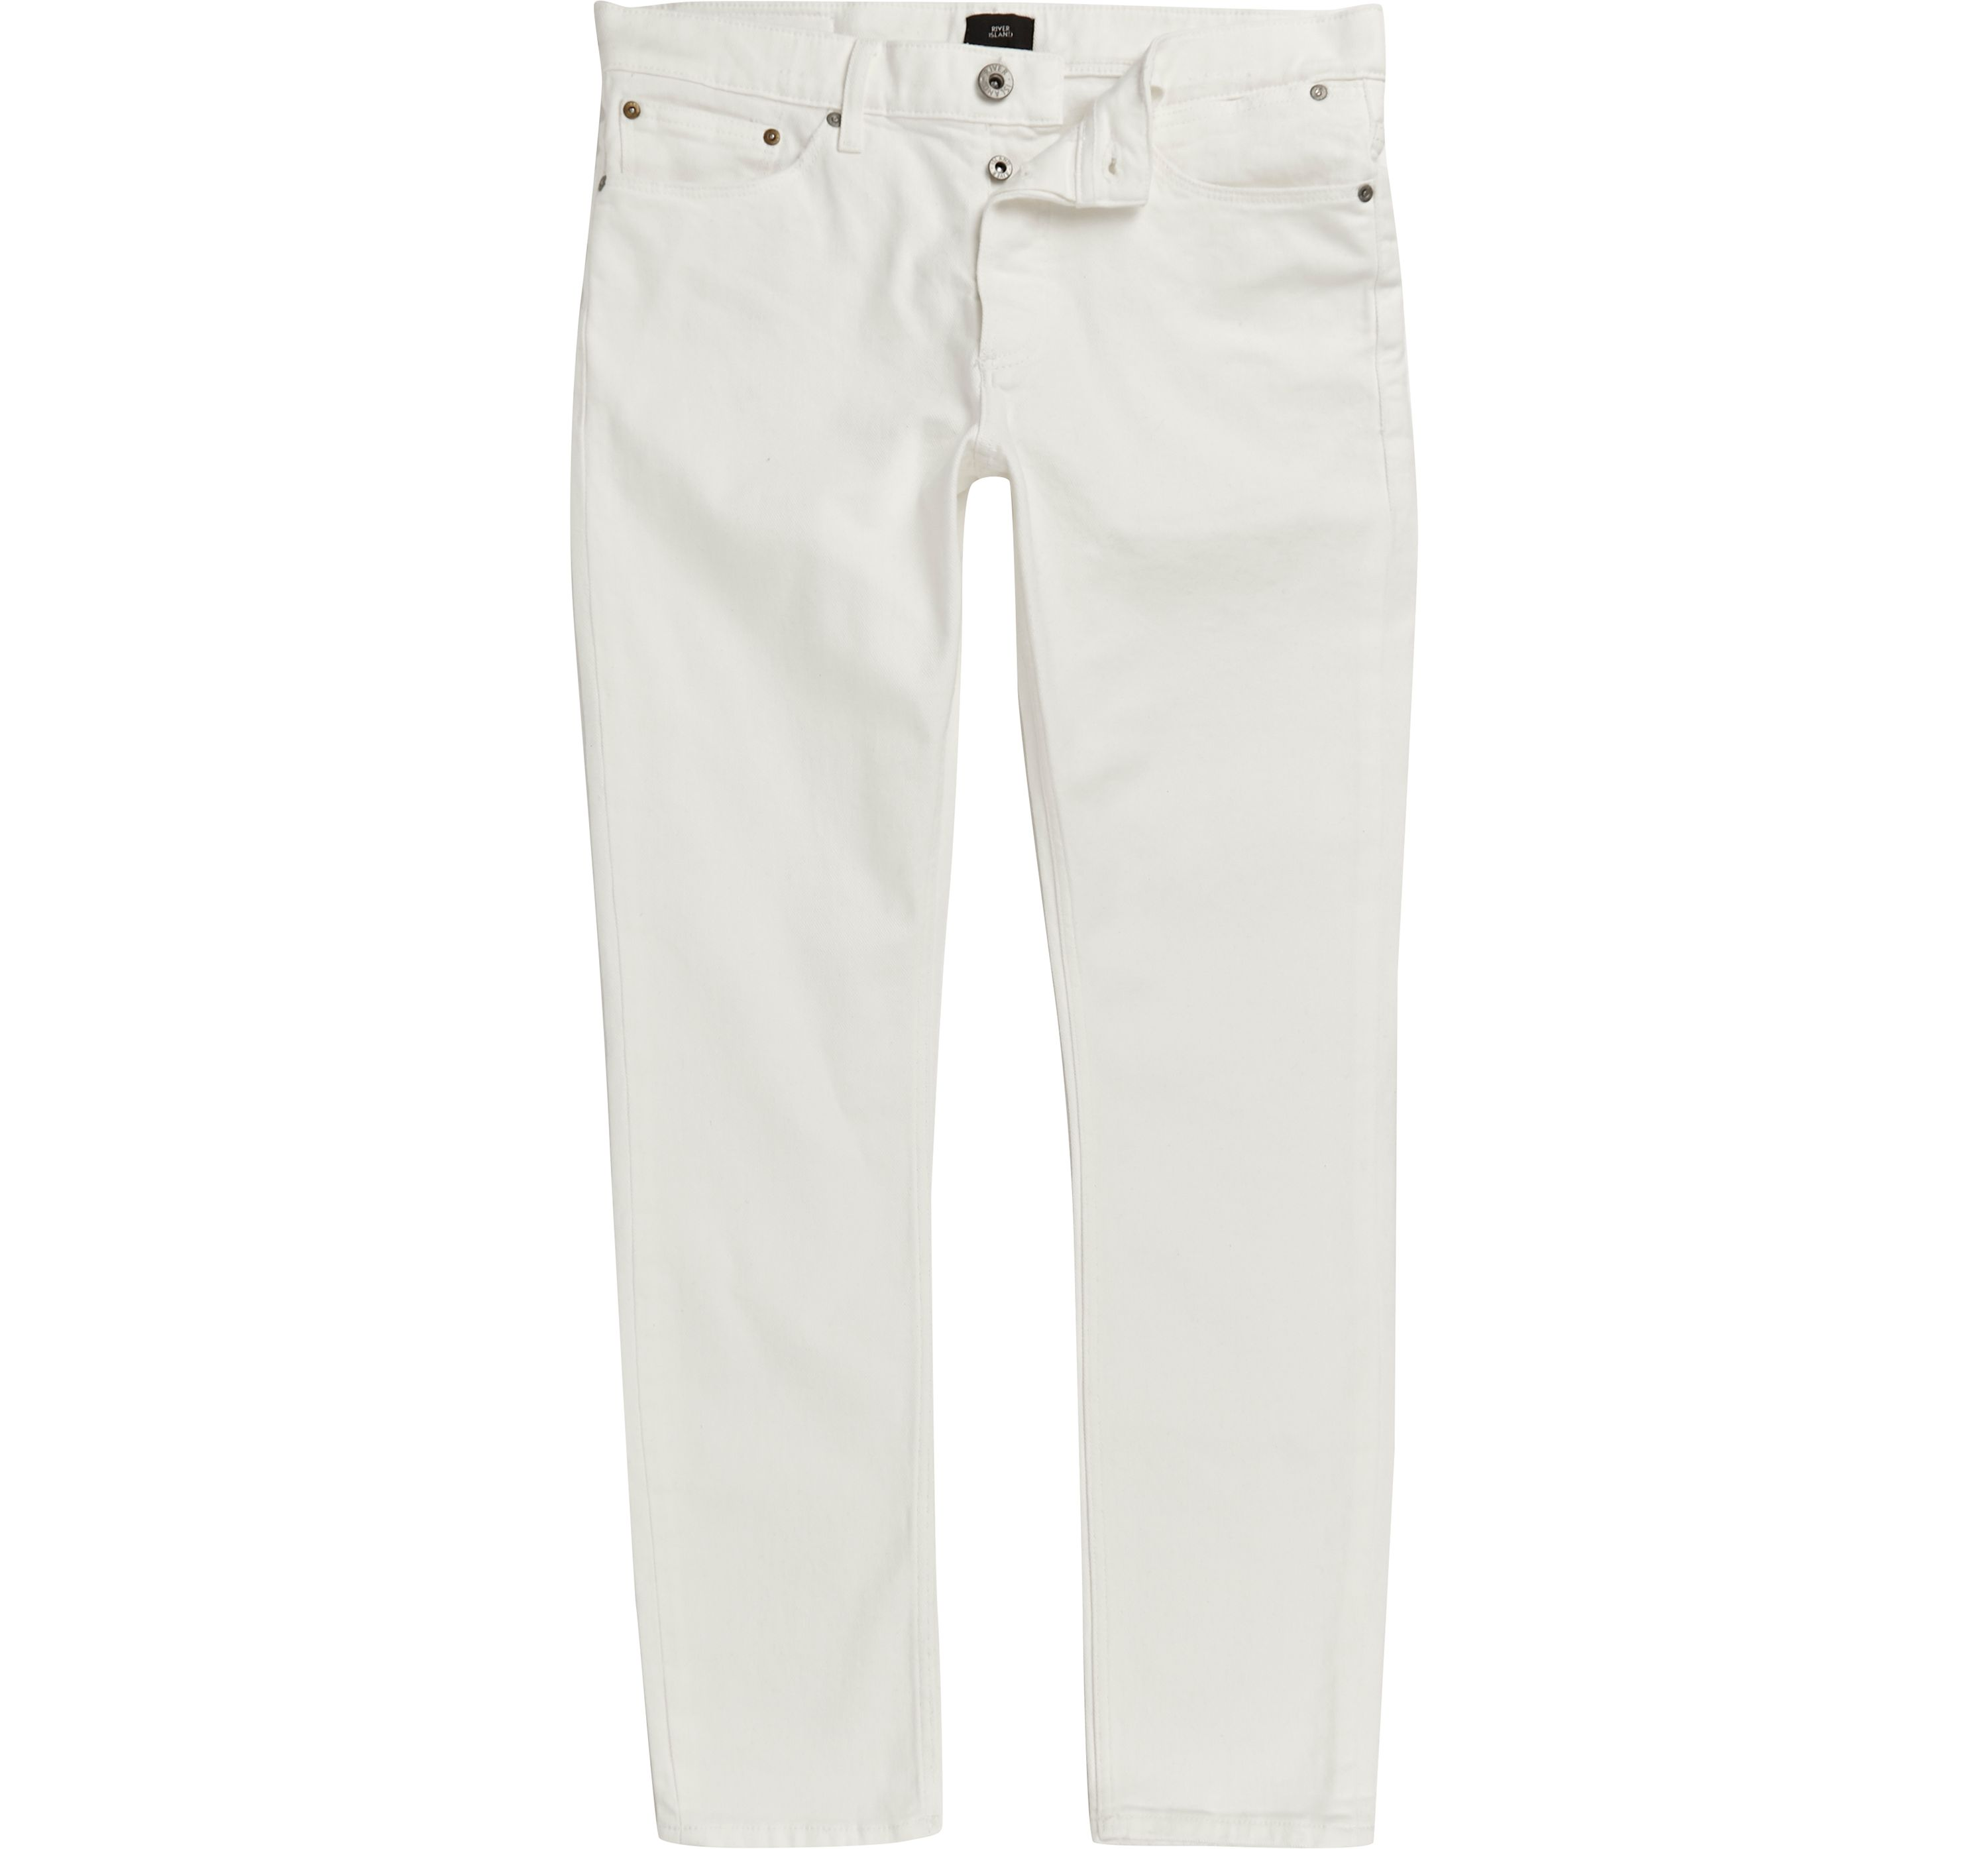 c1a908e3 Mens White Sid skinny jeans by River Island — Thread